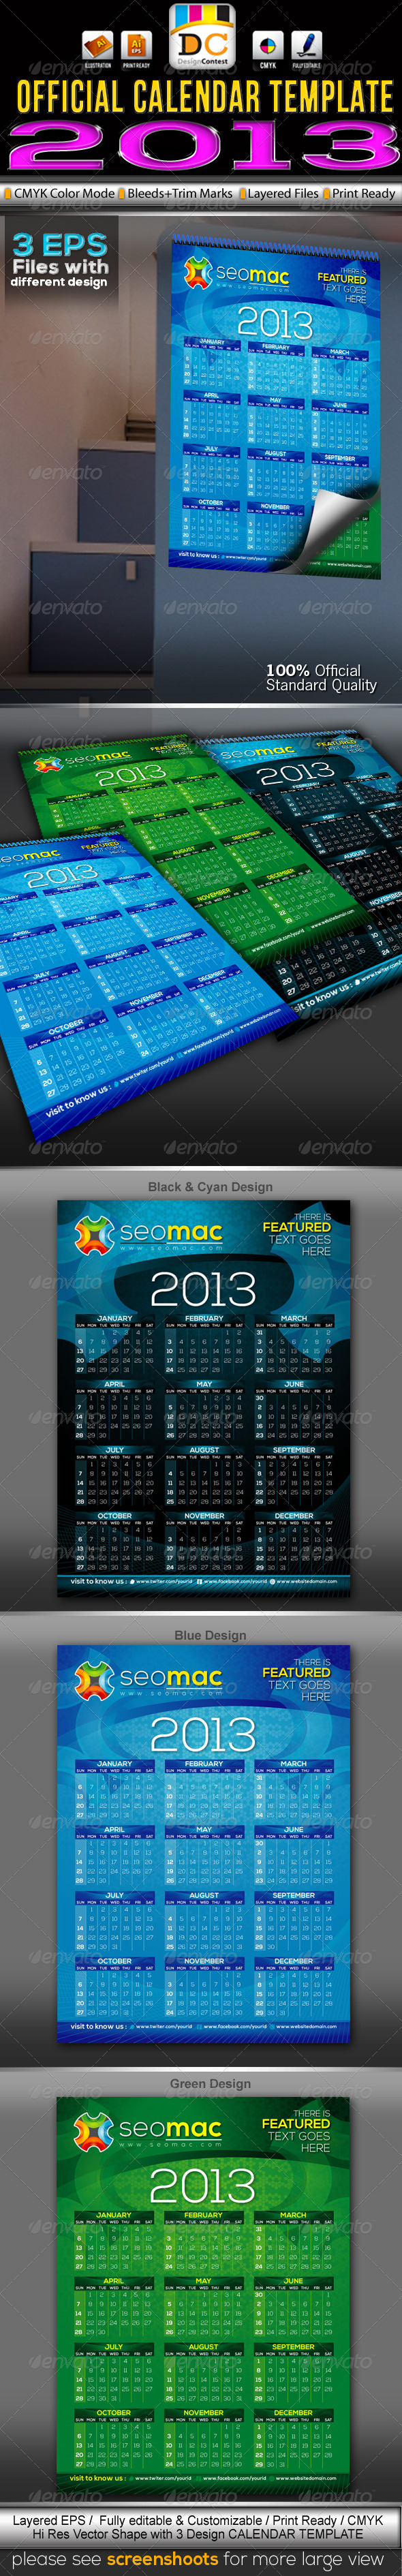 SeoMac_2013 Official Calendar Templates - Calendars Stationery